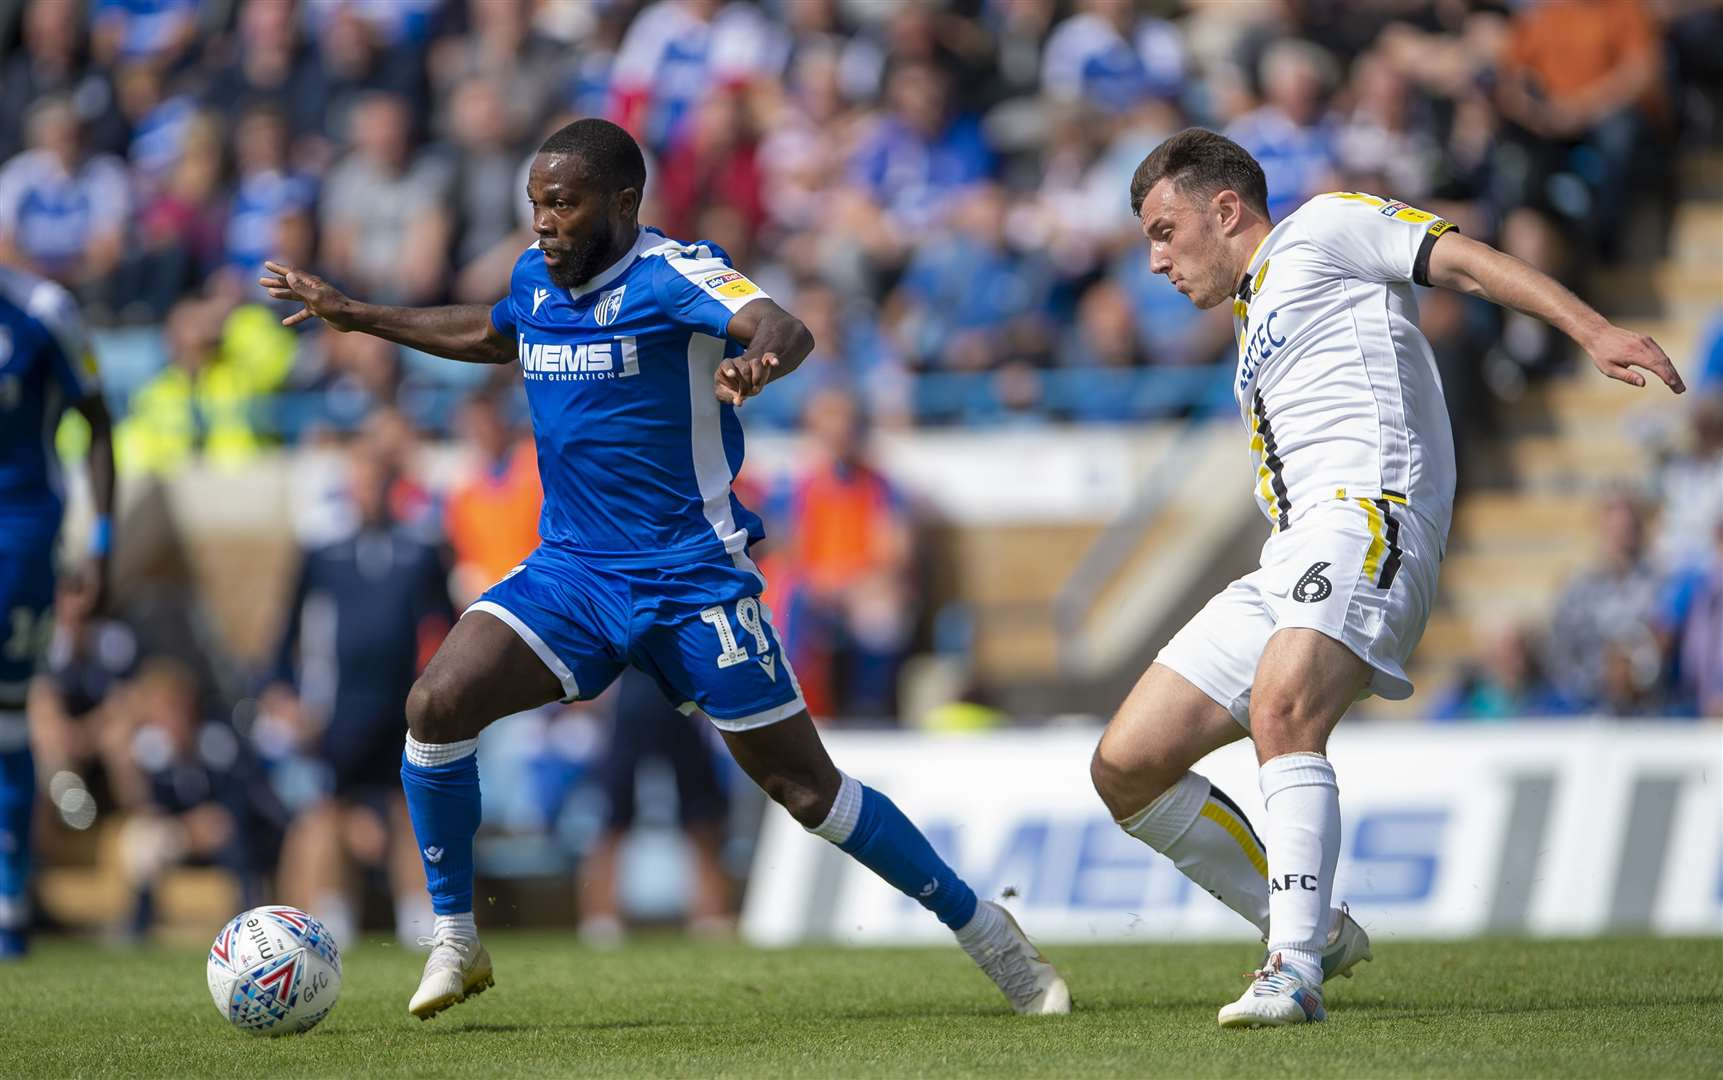 Gillingham's Mark Marshall gets away from Kieran Wallace Picture: Ady Kerry